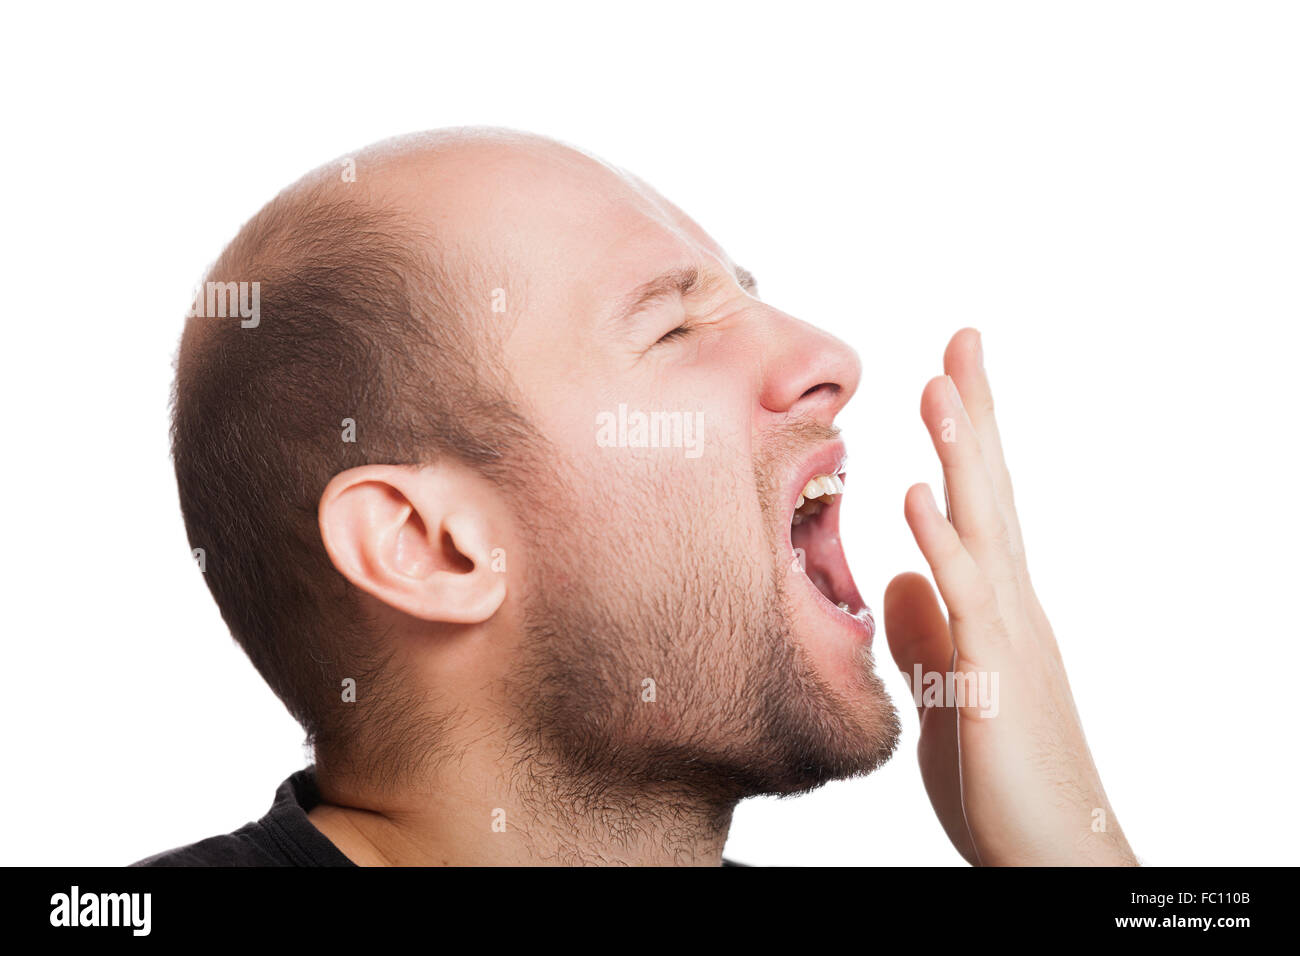 Tired man wide open mouth yawning - Stock Image